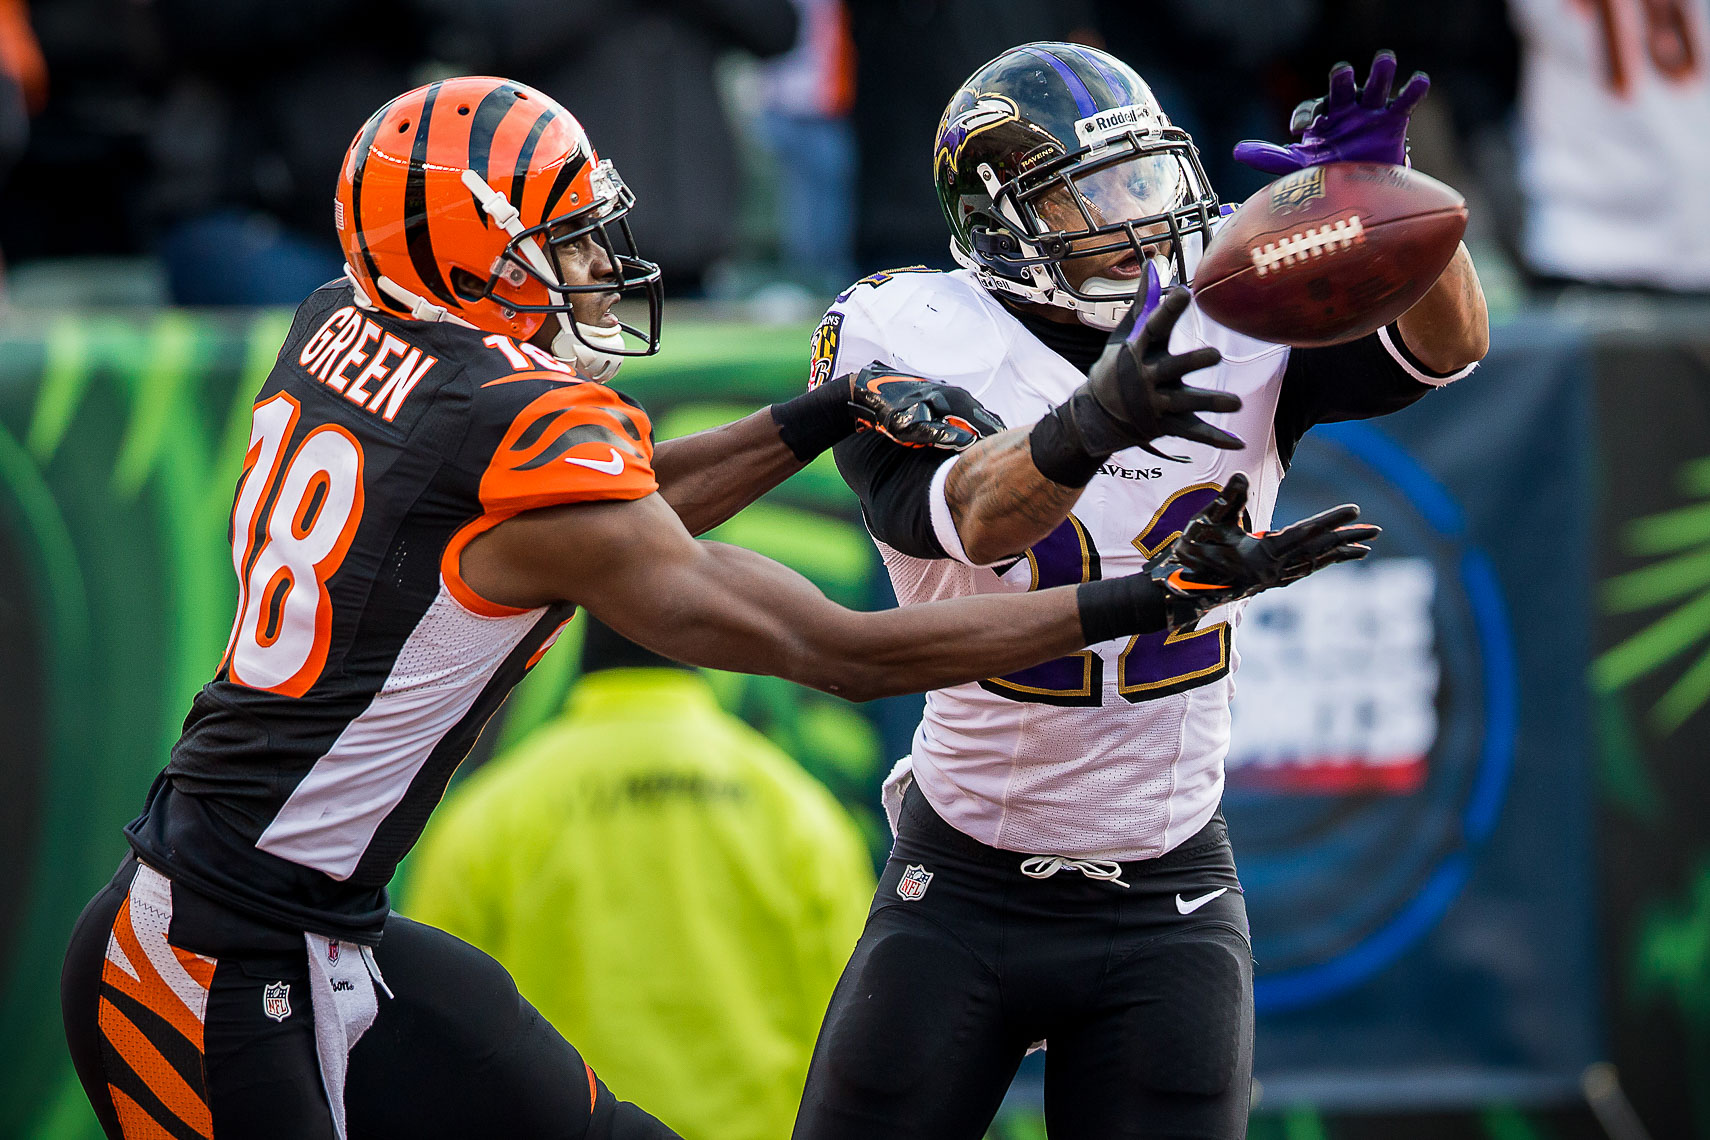 ravens29  NFL Baltimore Ravens photos NFL behind the scenes documentary sports photographer photo of cornerback Jimmie Smith interception AJ Green